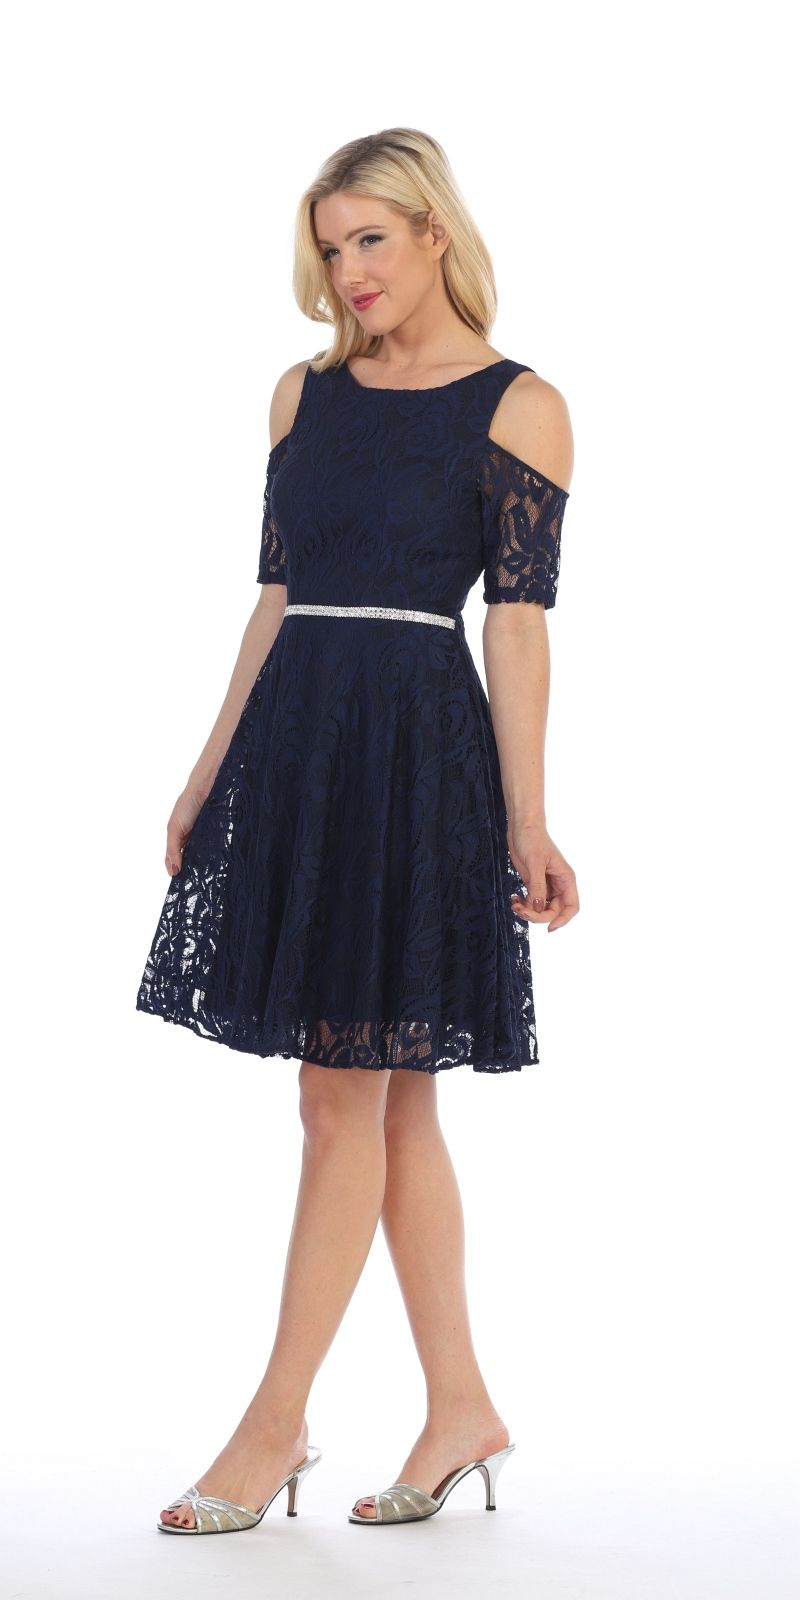 45e42946b4c ... Back Celavie 6307 Navy Blue Lace A-Line Wedding Guest Dress Cold  Shoulder Short Sleeves Side ...